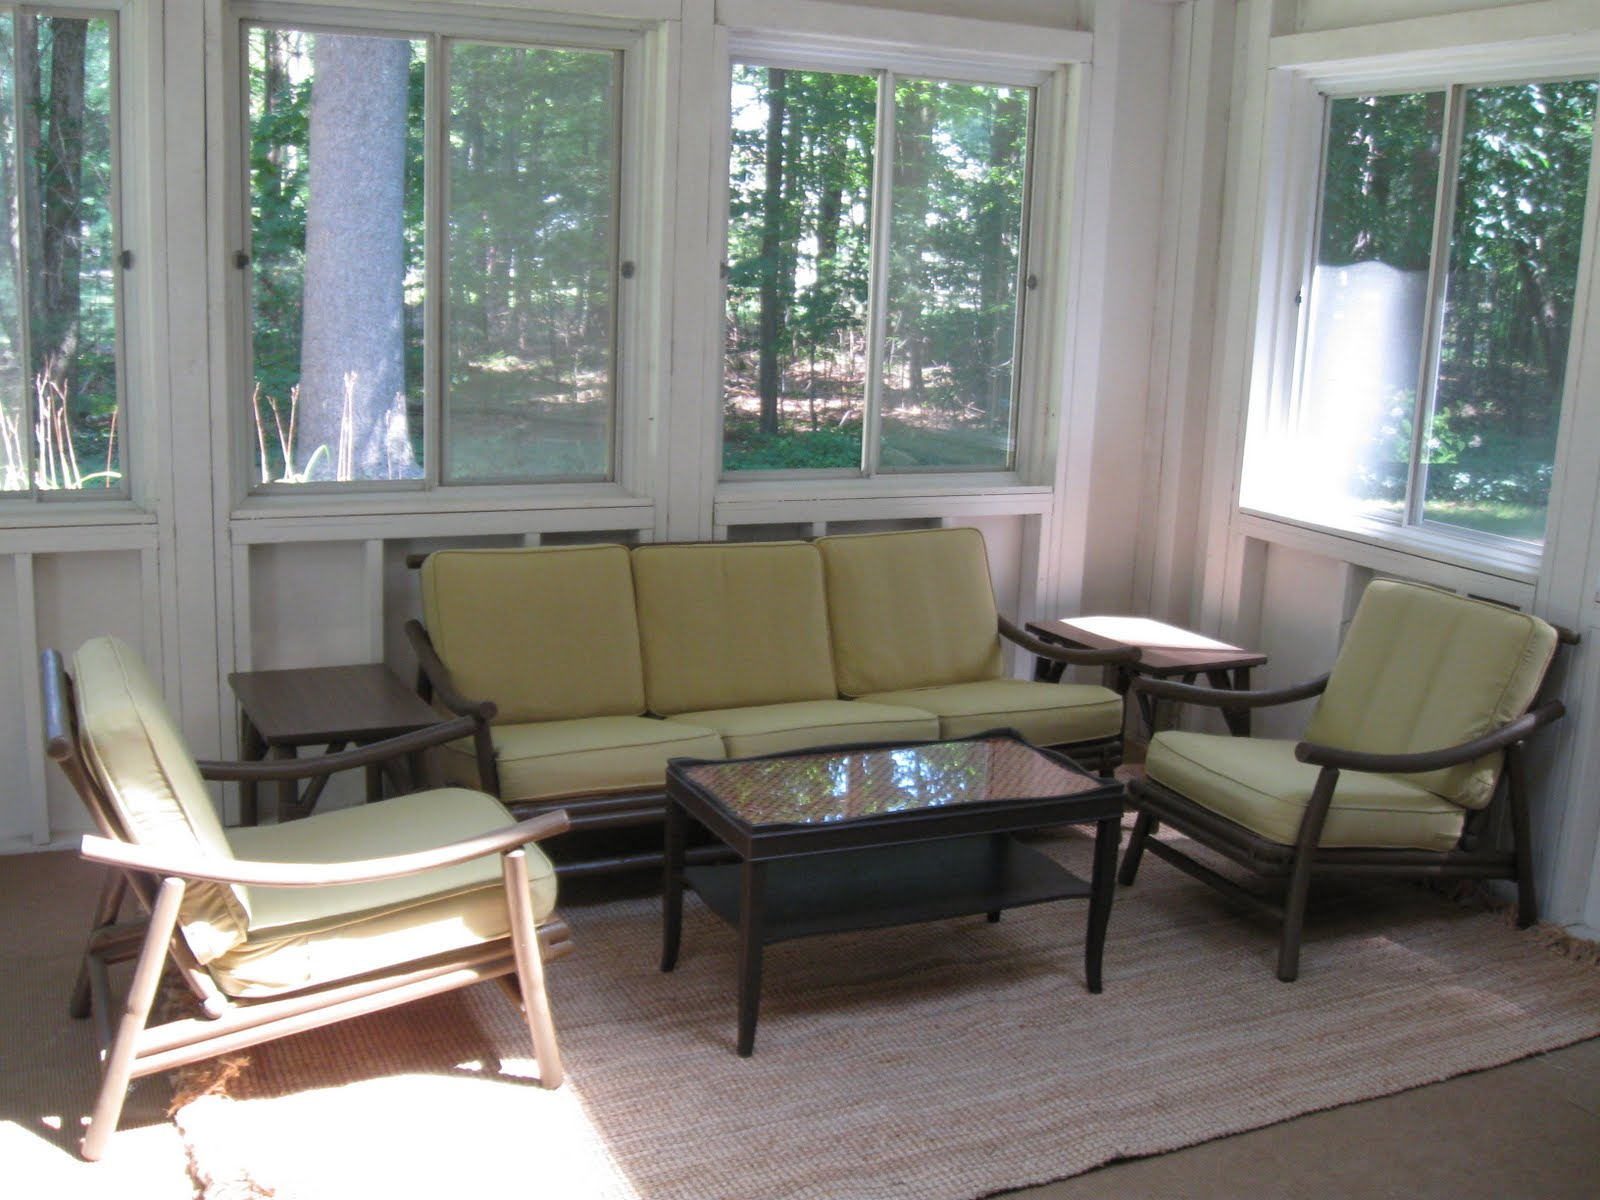 Design Megillah: Sun room, layer by layer